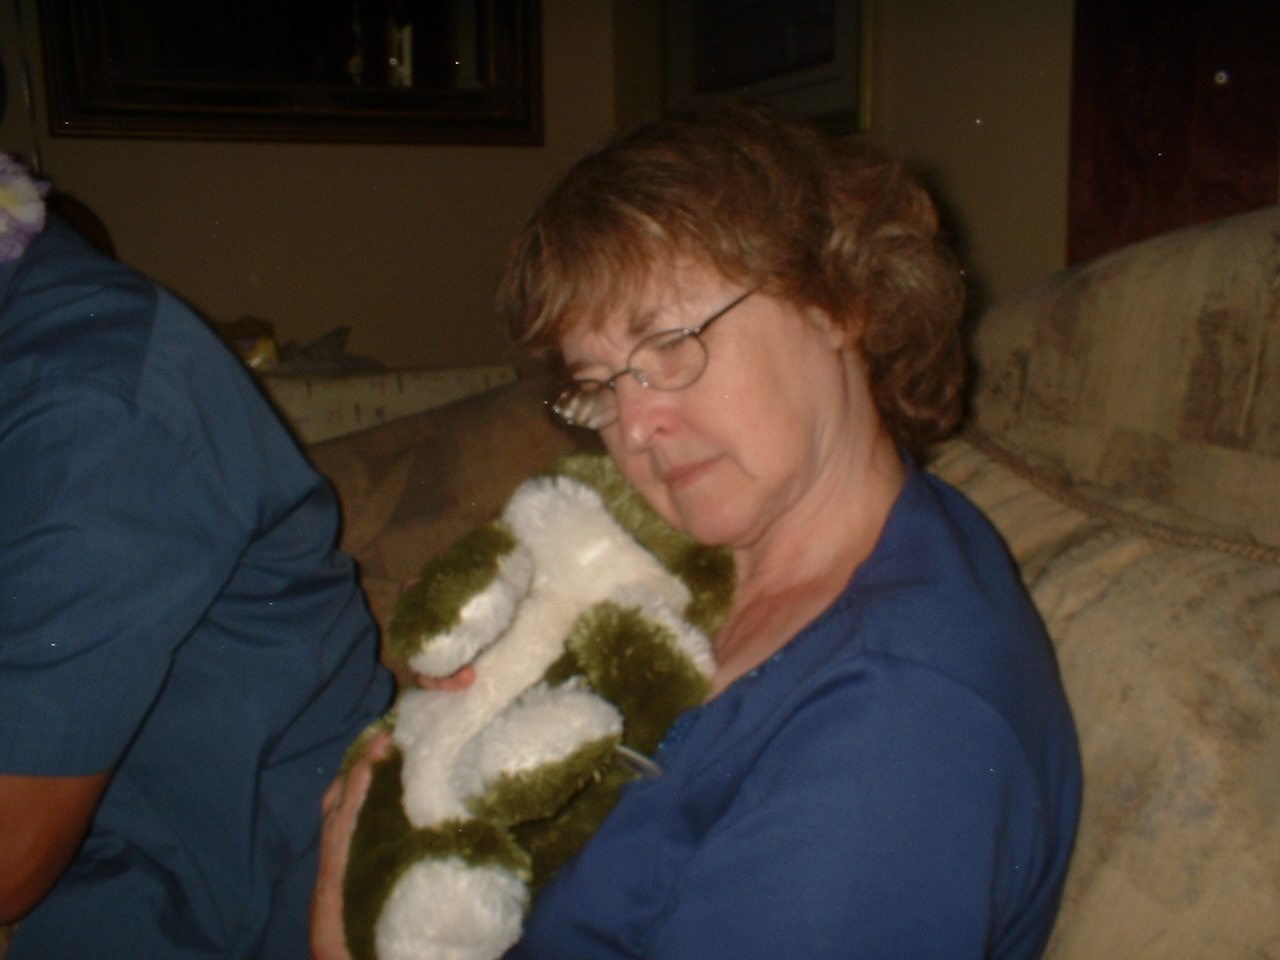 Mom cuddling with a frog!